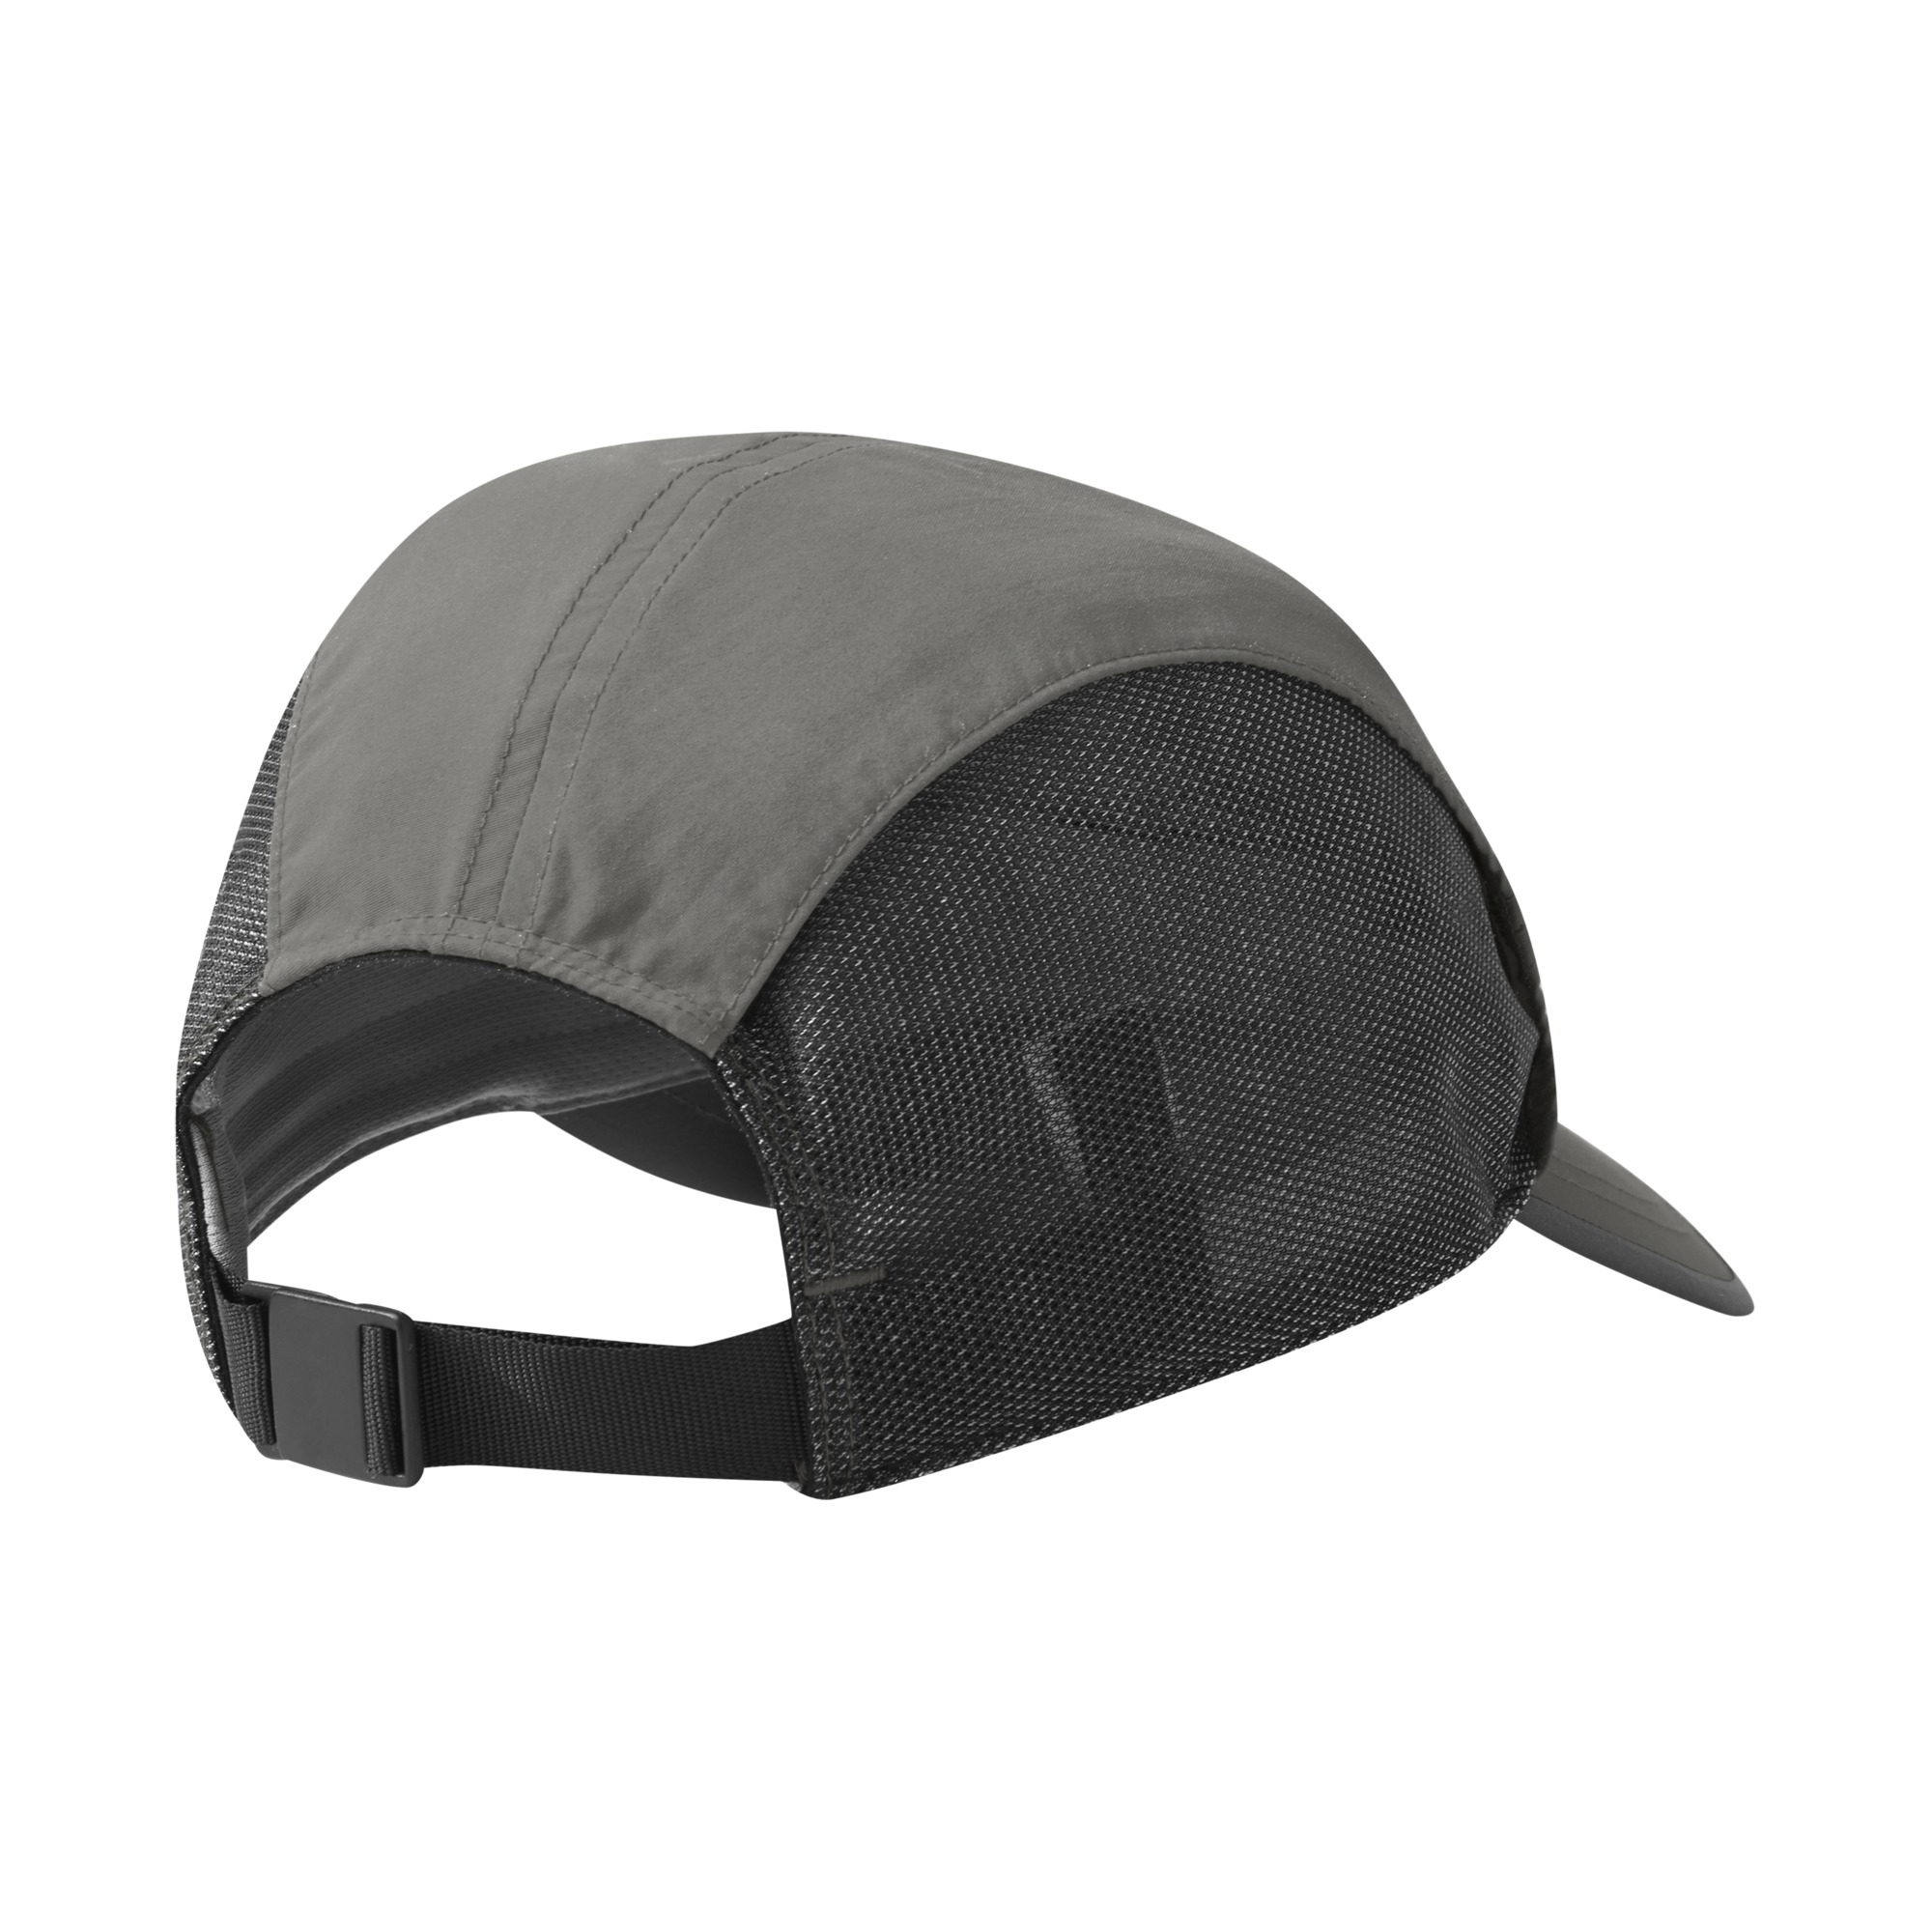 5f7e5790e8714 Swift Cap - dusk/dark grey | Outdoor Research